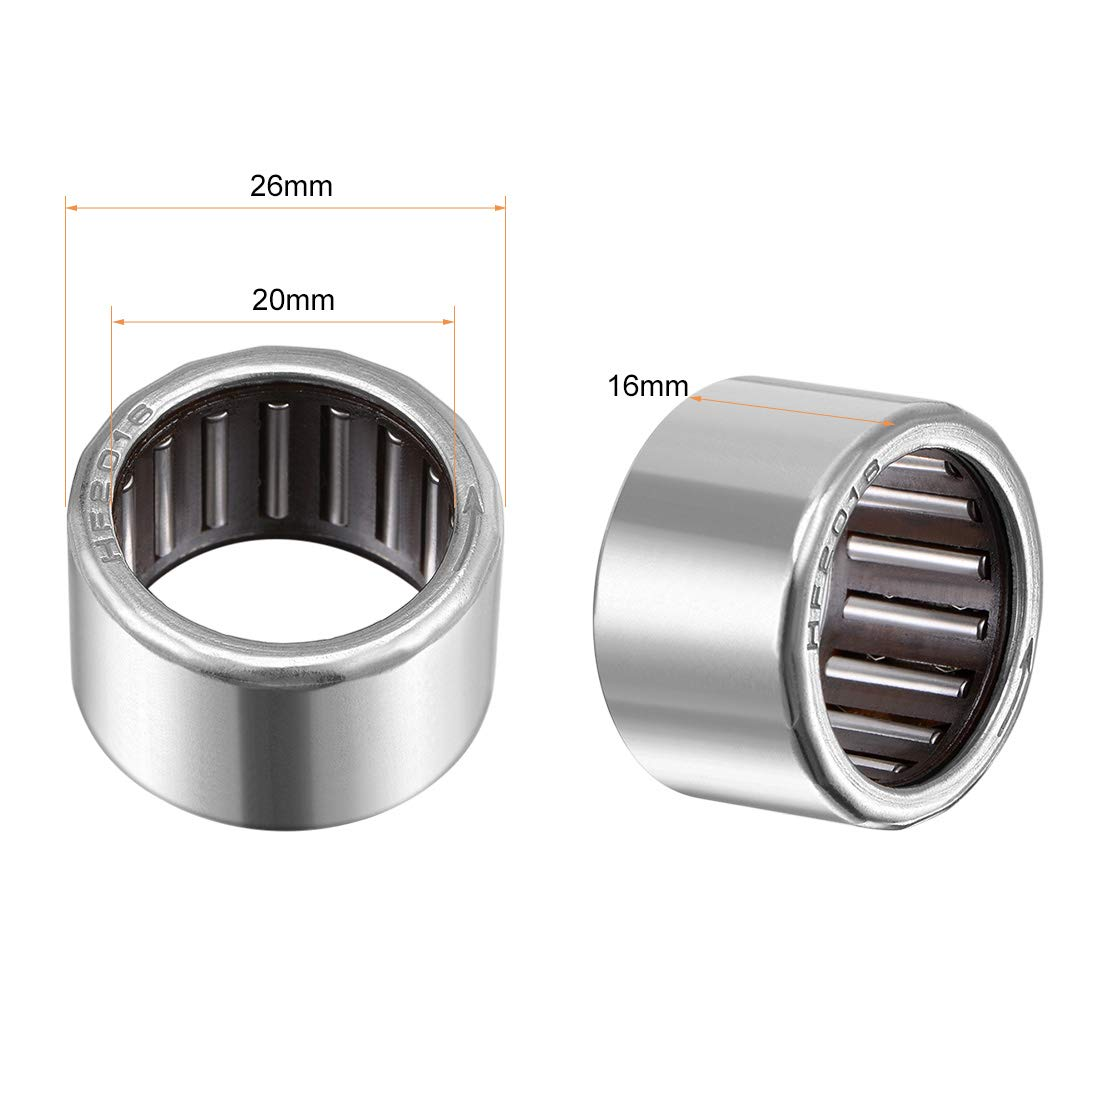 12mm Calibre 18mm OD 16mm Large sourcing map HF1216 Roulement Aiguille 1 Voie Roulement